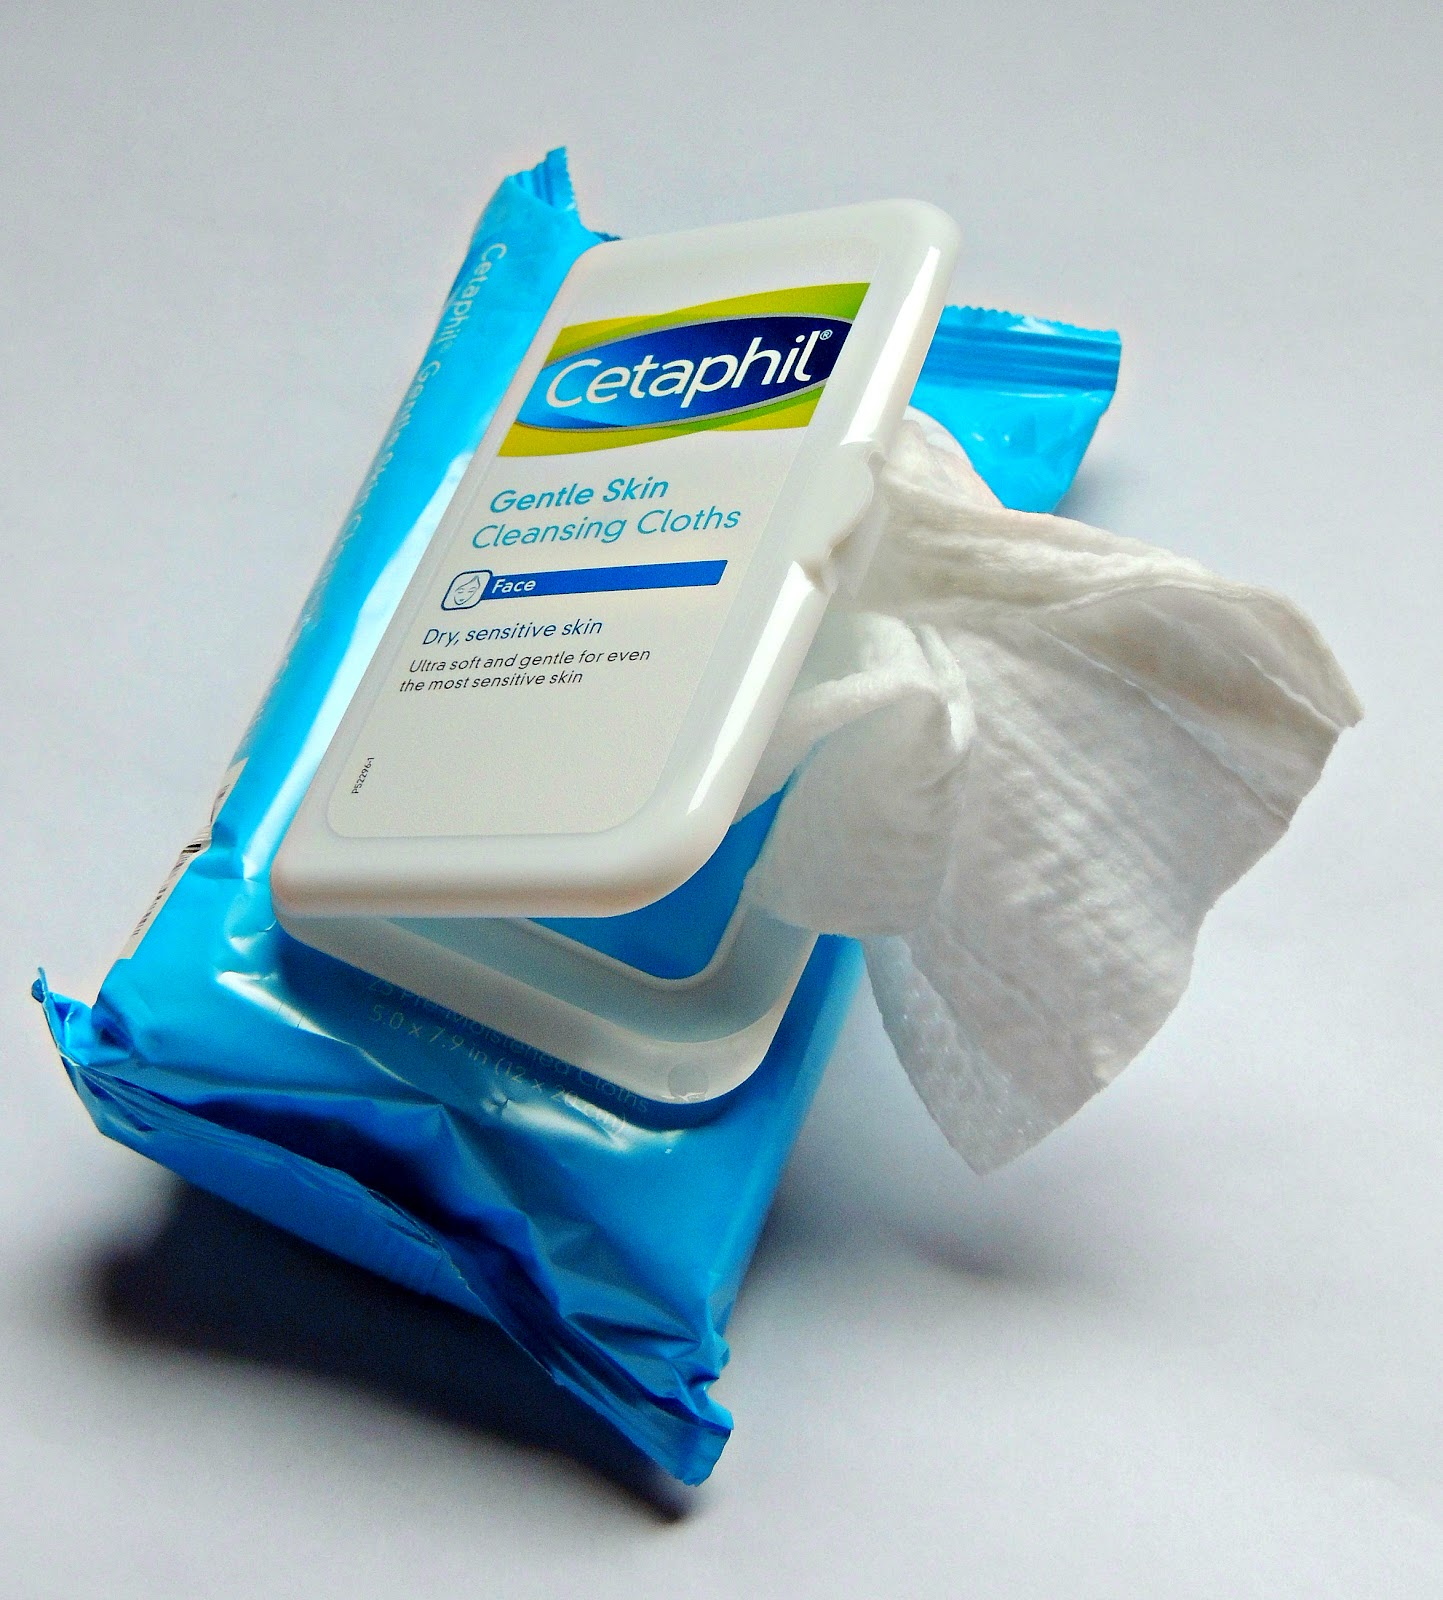 Cetaphil® Gentle Skin Cleansing Cloths 25 #BeforeDifferinJourney #ad.jpg